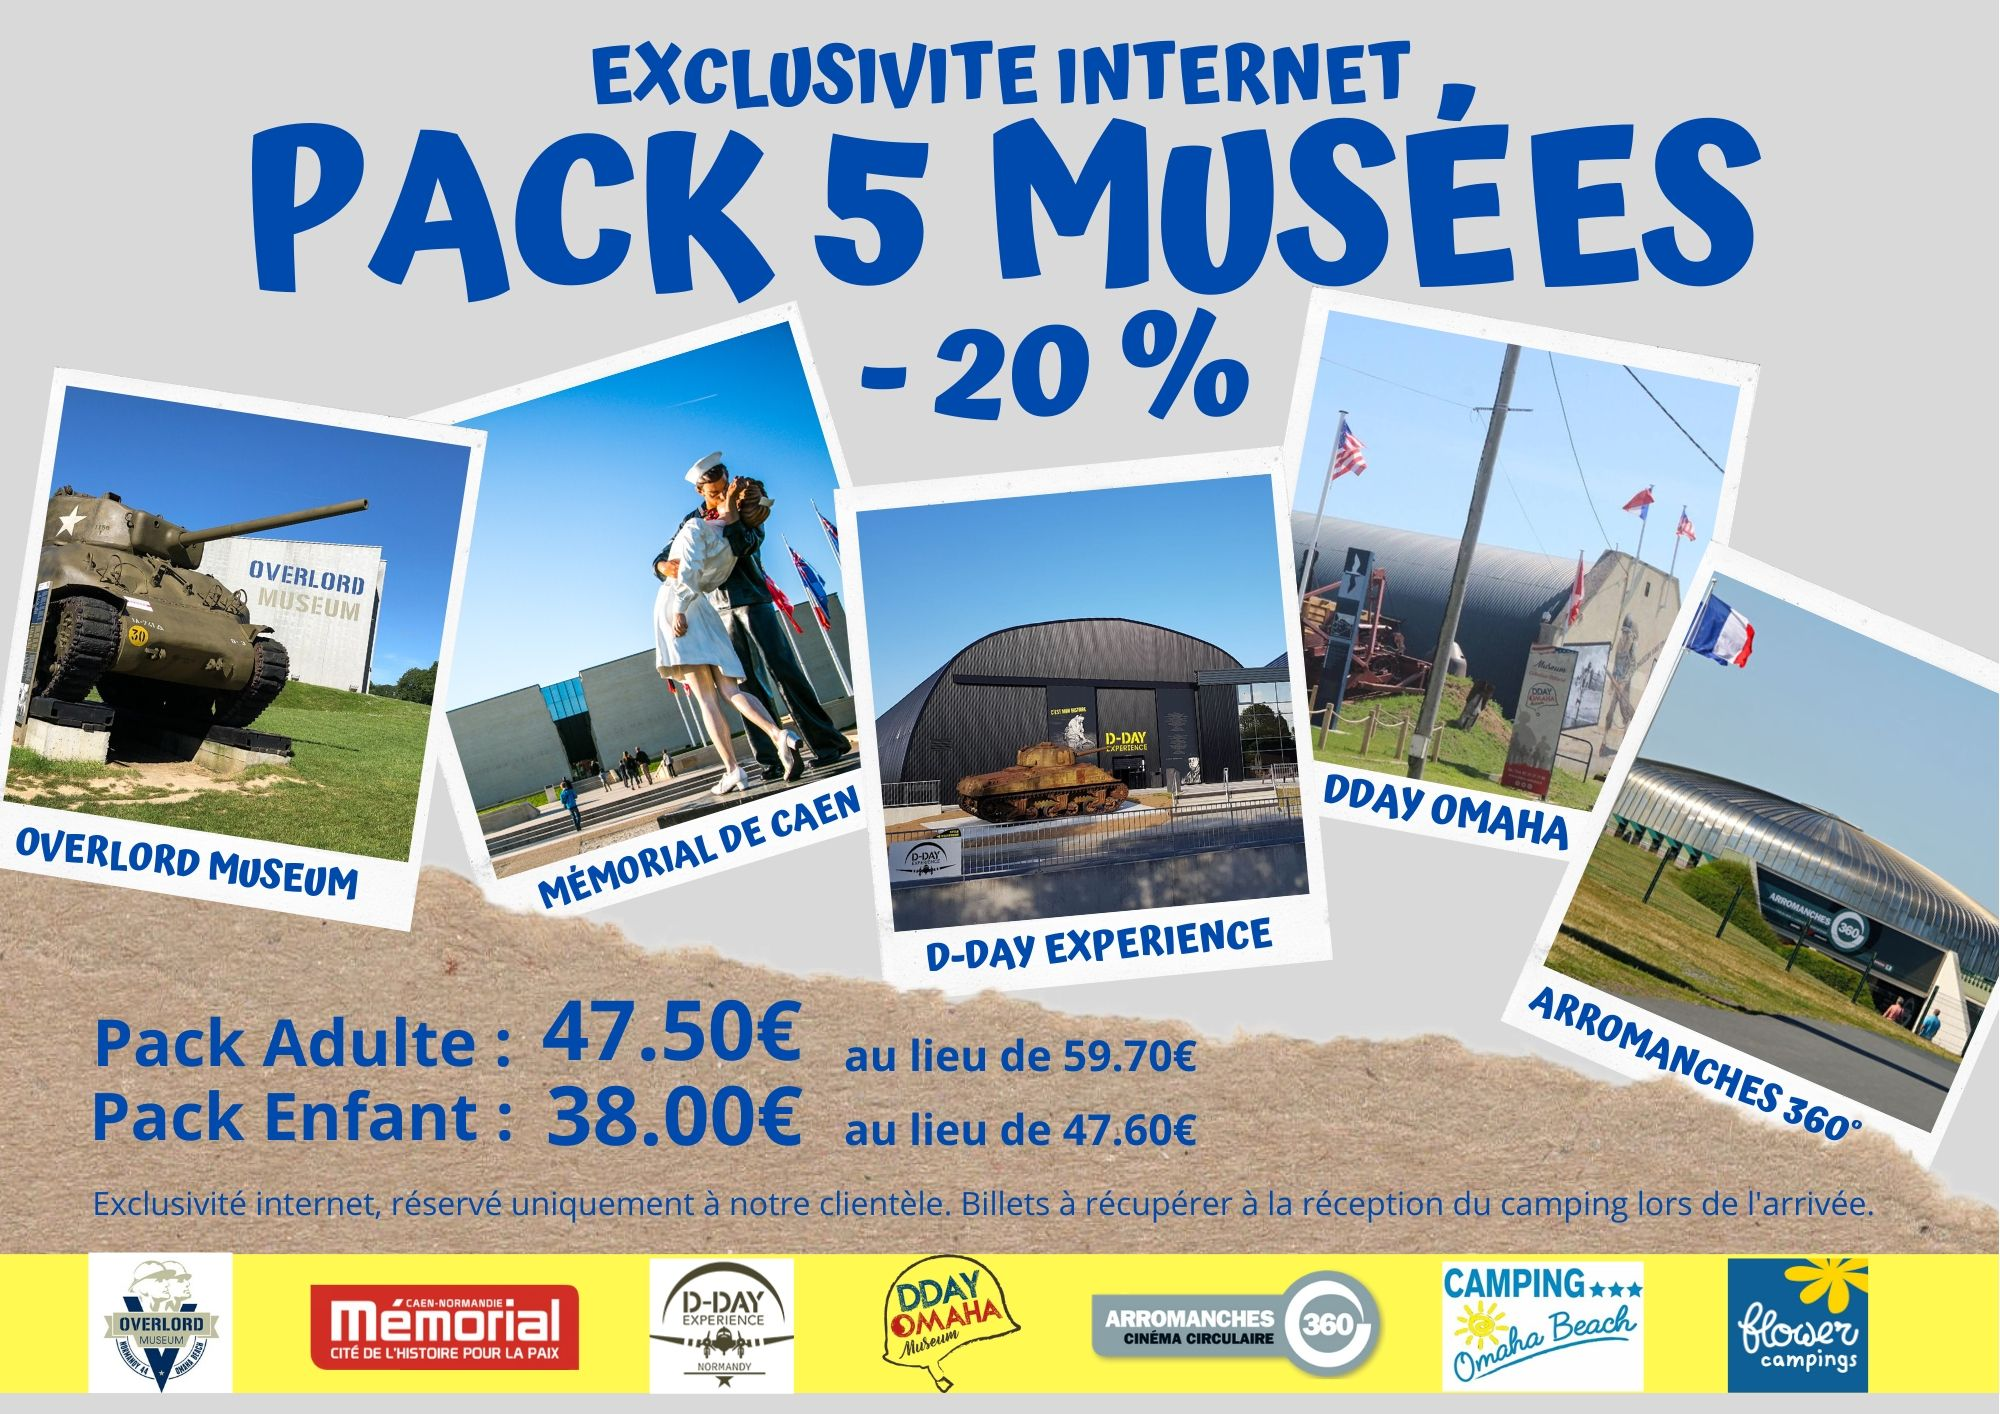 PACK DECOUVERTE 5 MUSEES